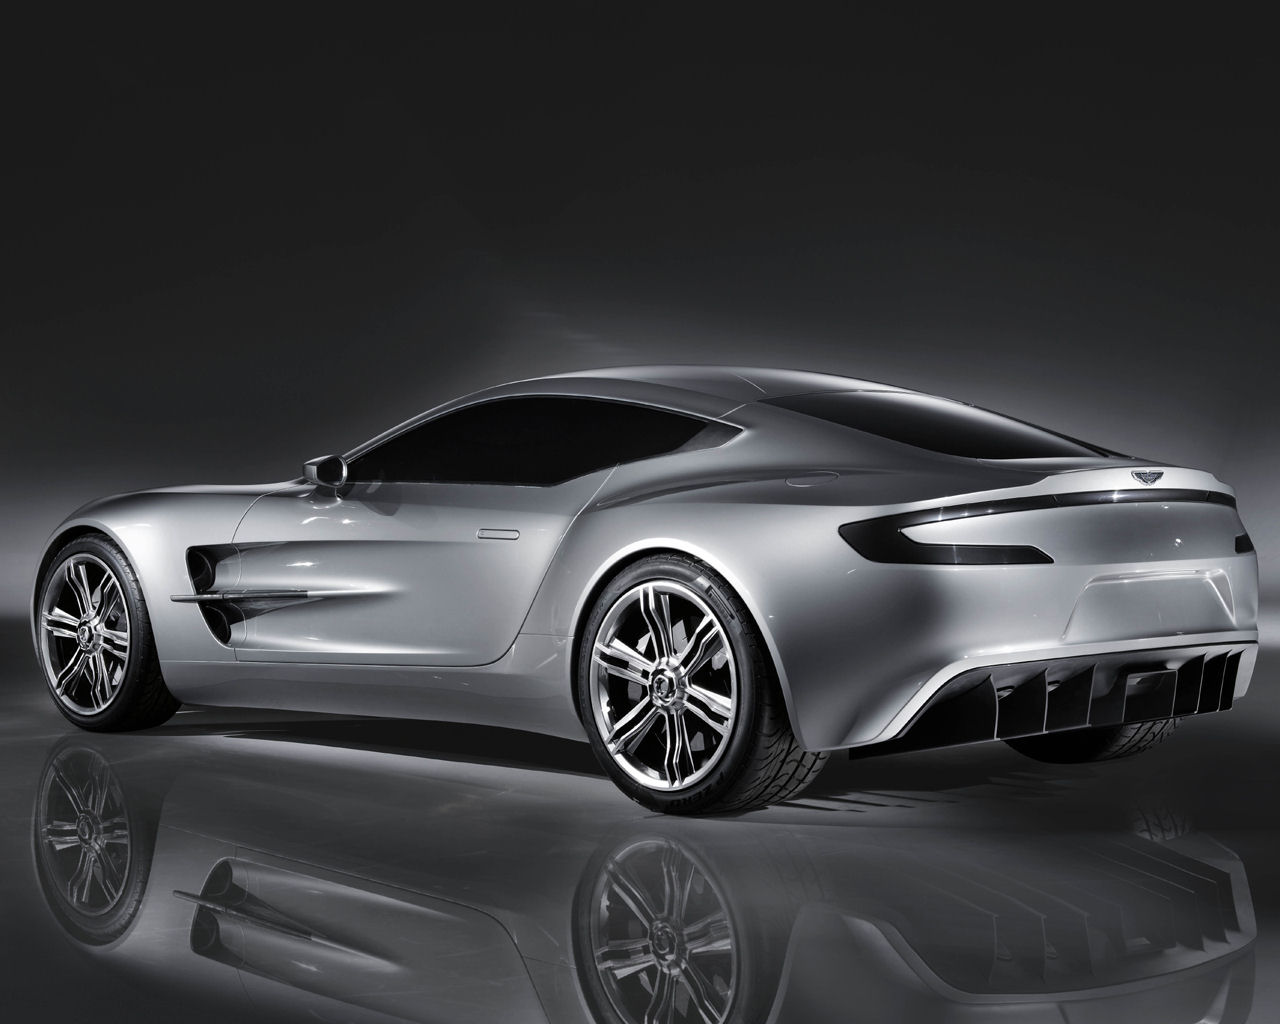 Aston Martin One 77   1280x1024 Wallpaper Desktop Background 1280x1024